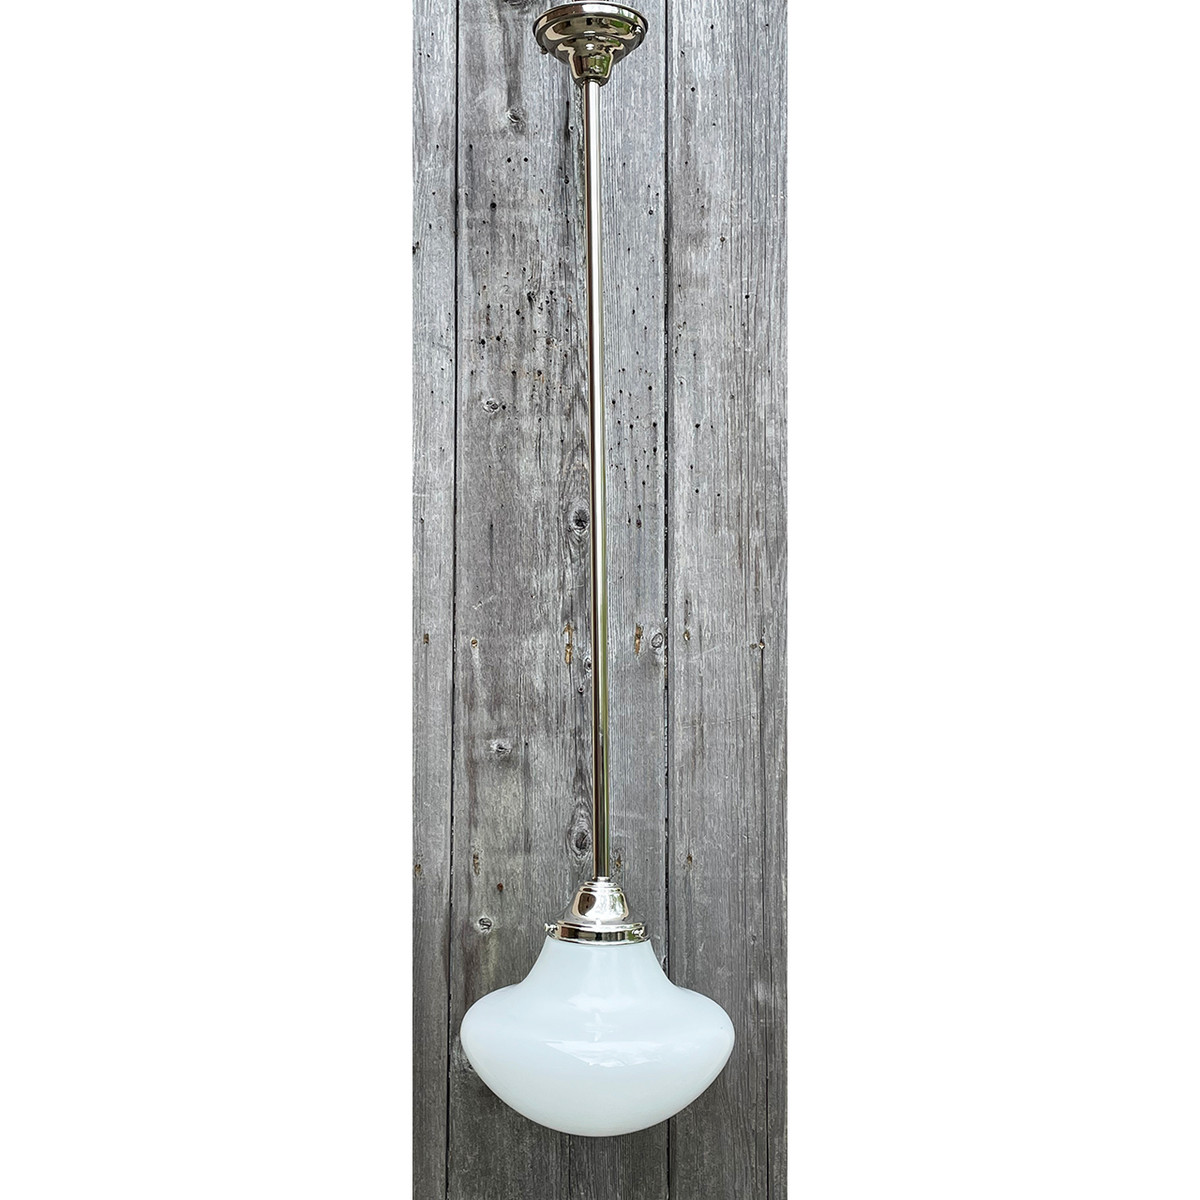 L21113 - Antique Schoolhouse Globe on Custom Fixture